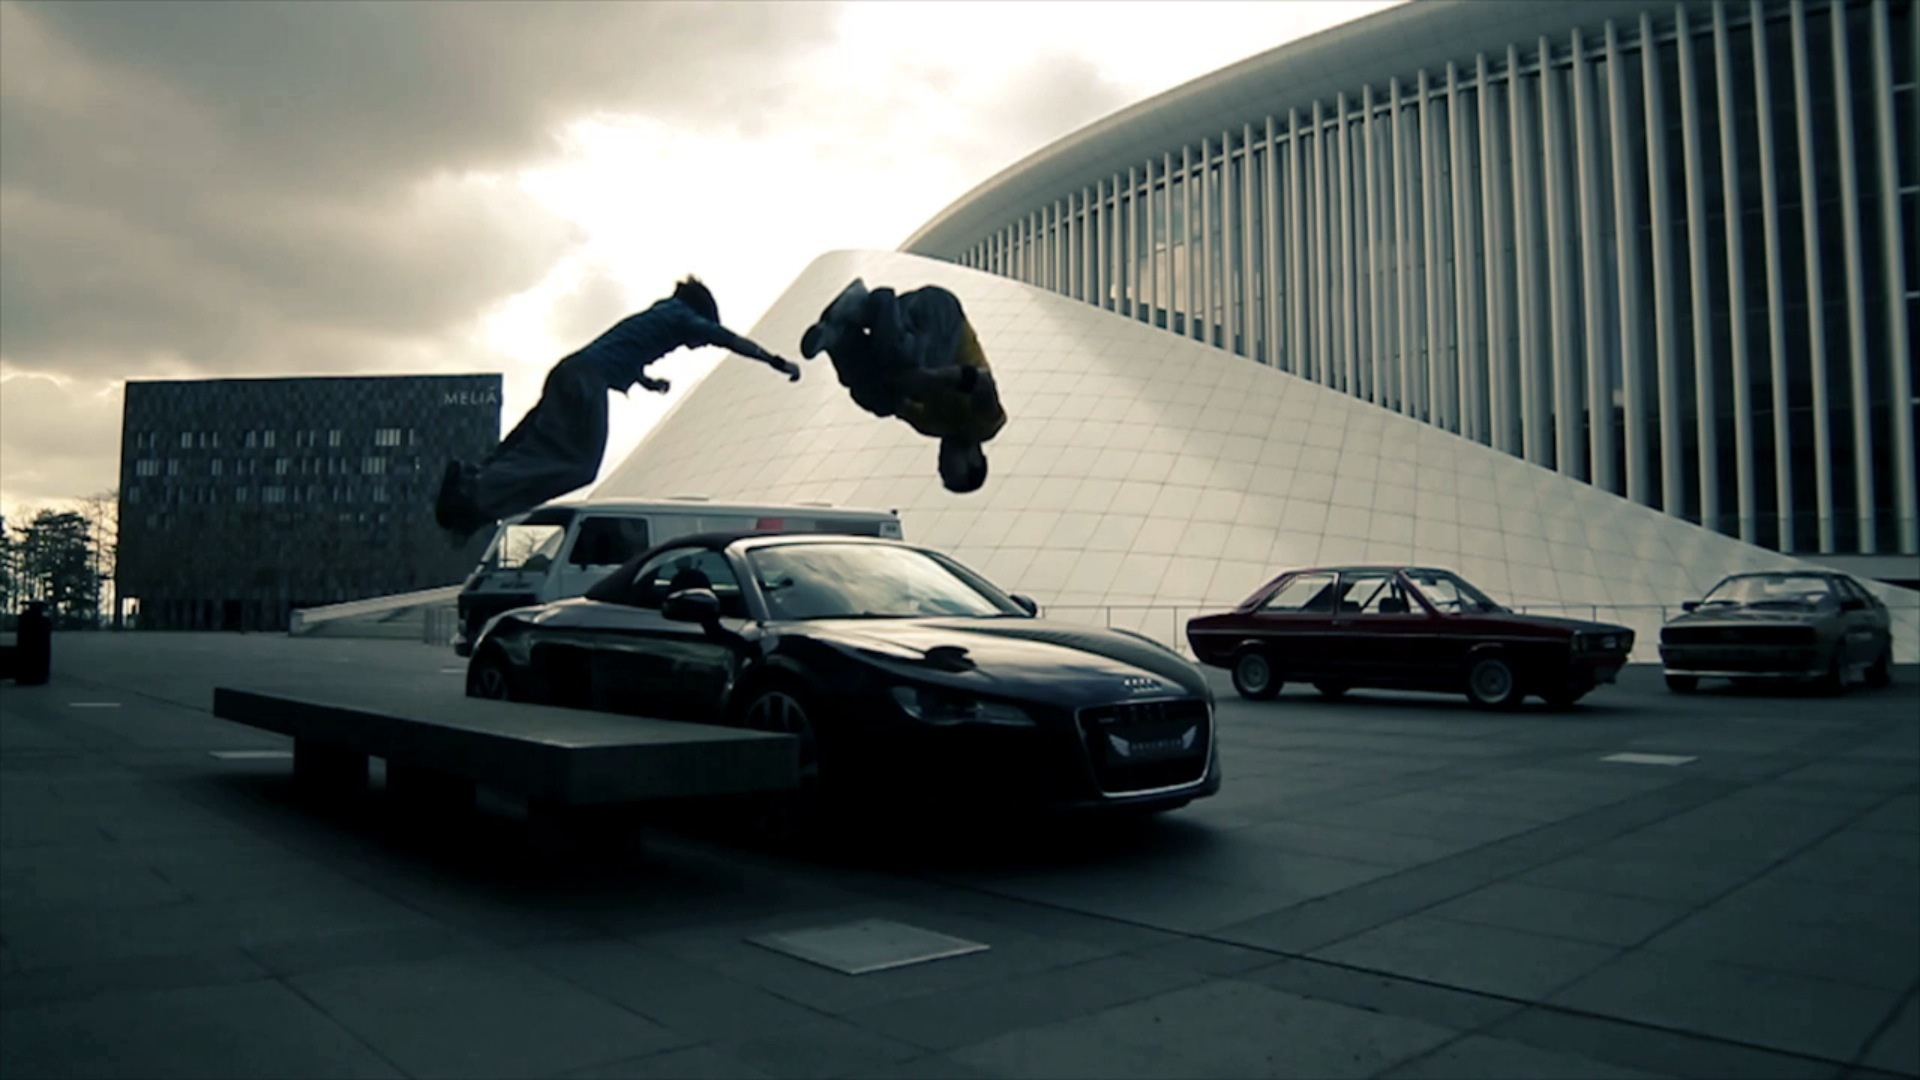 Parkour in the parking lot wallpapers and images   wallpapers 1920x1080